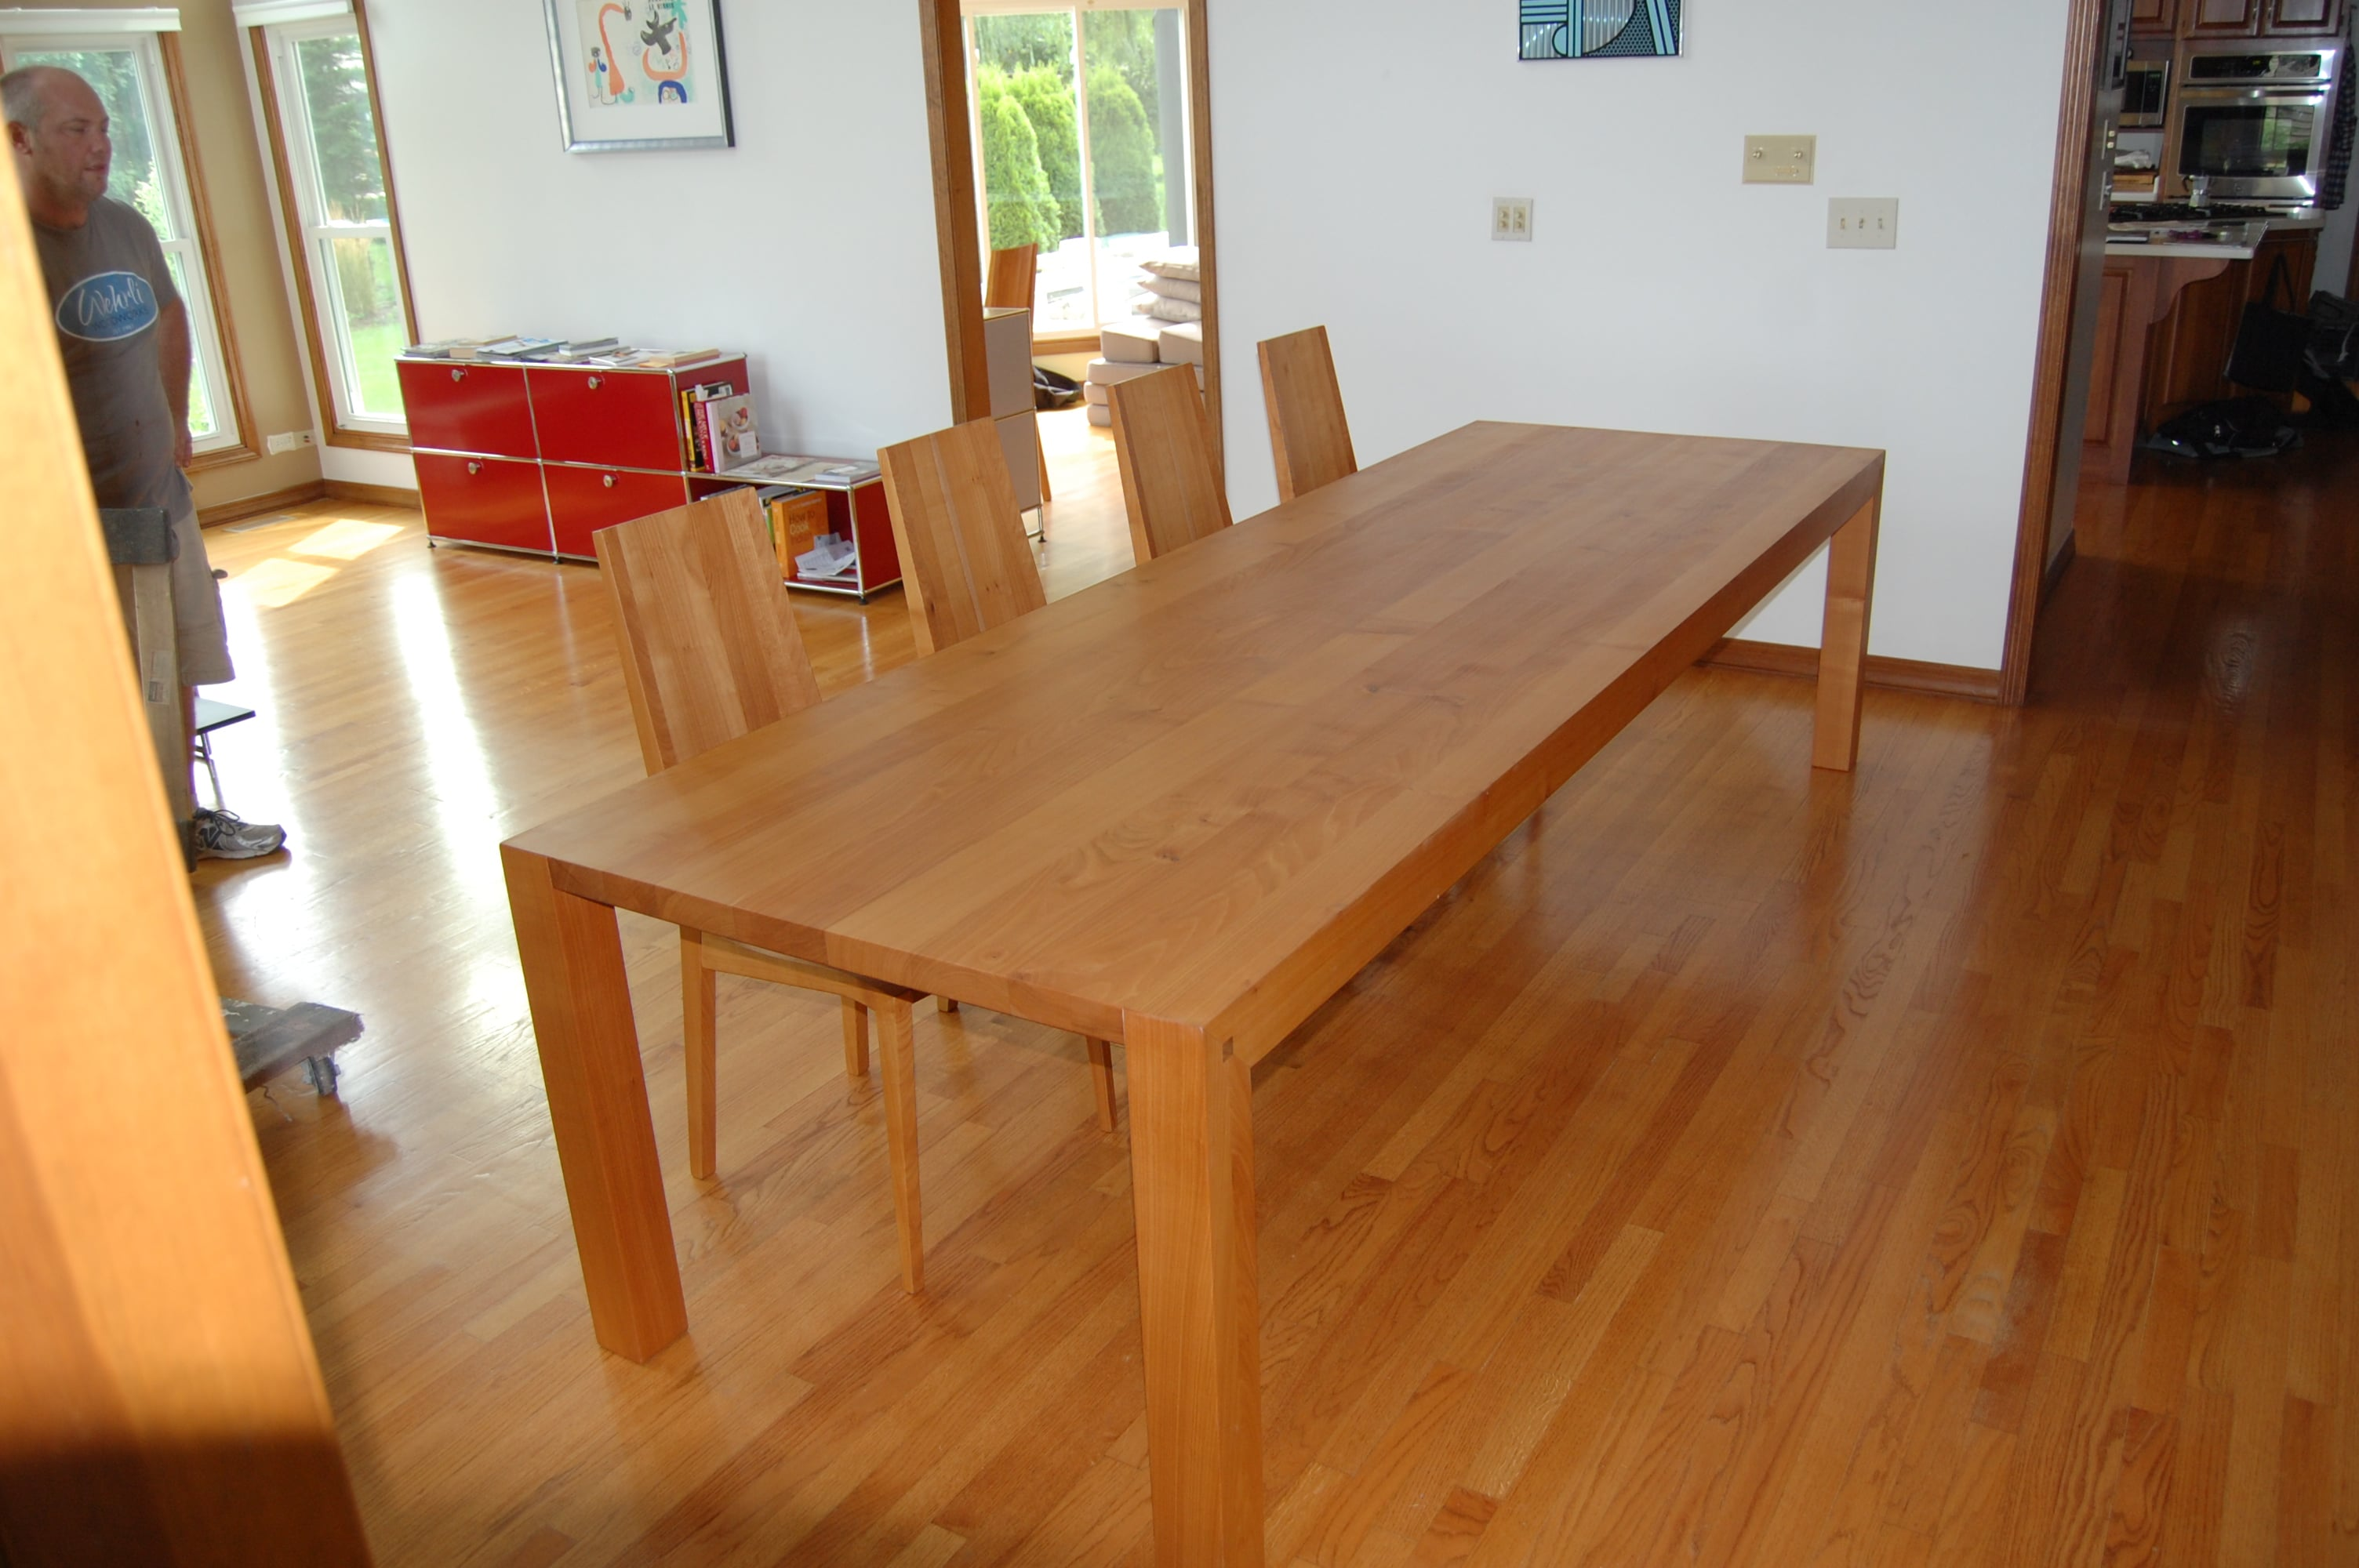 Furniture Refinishing – The Table That Was Sawed In Half!!!